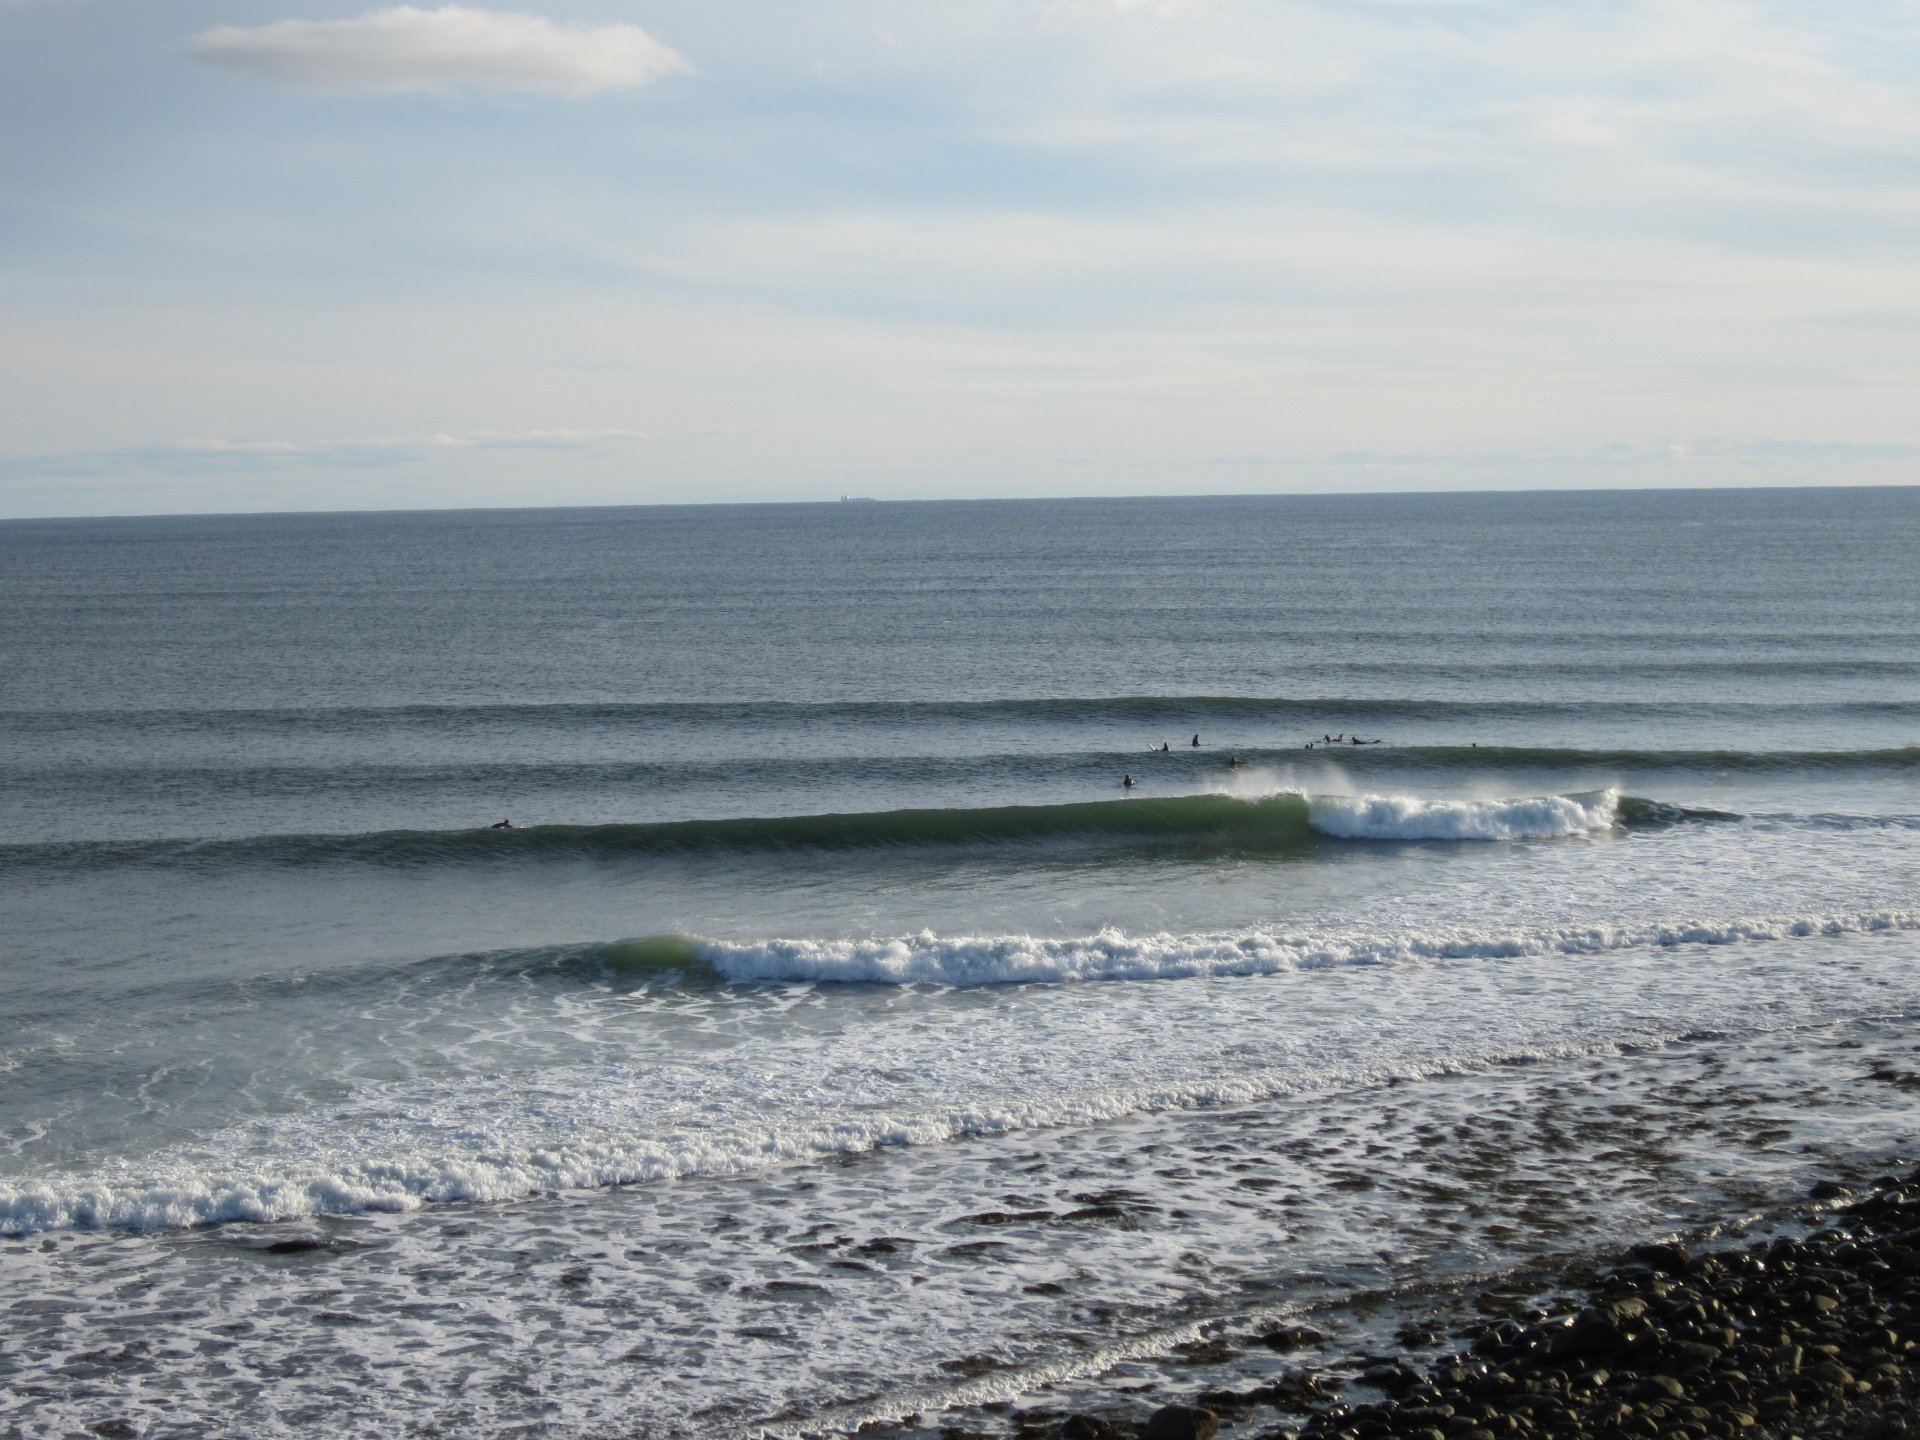 crane's photo of Lawrencetown